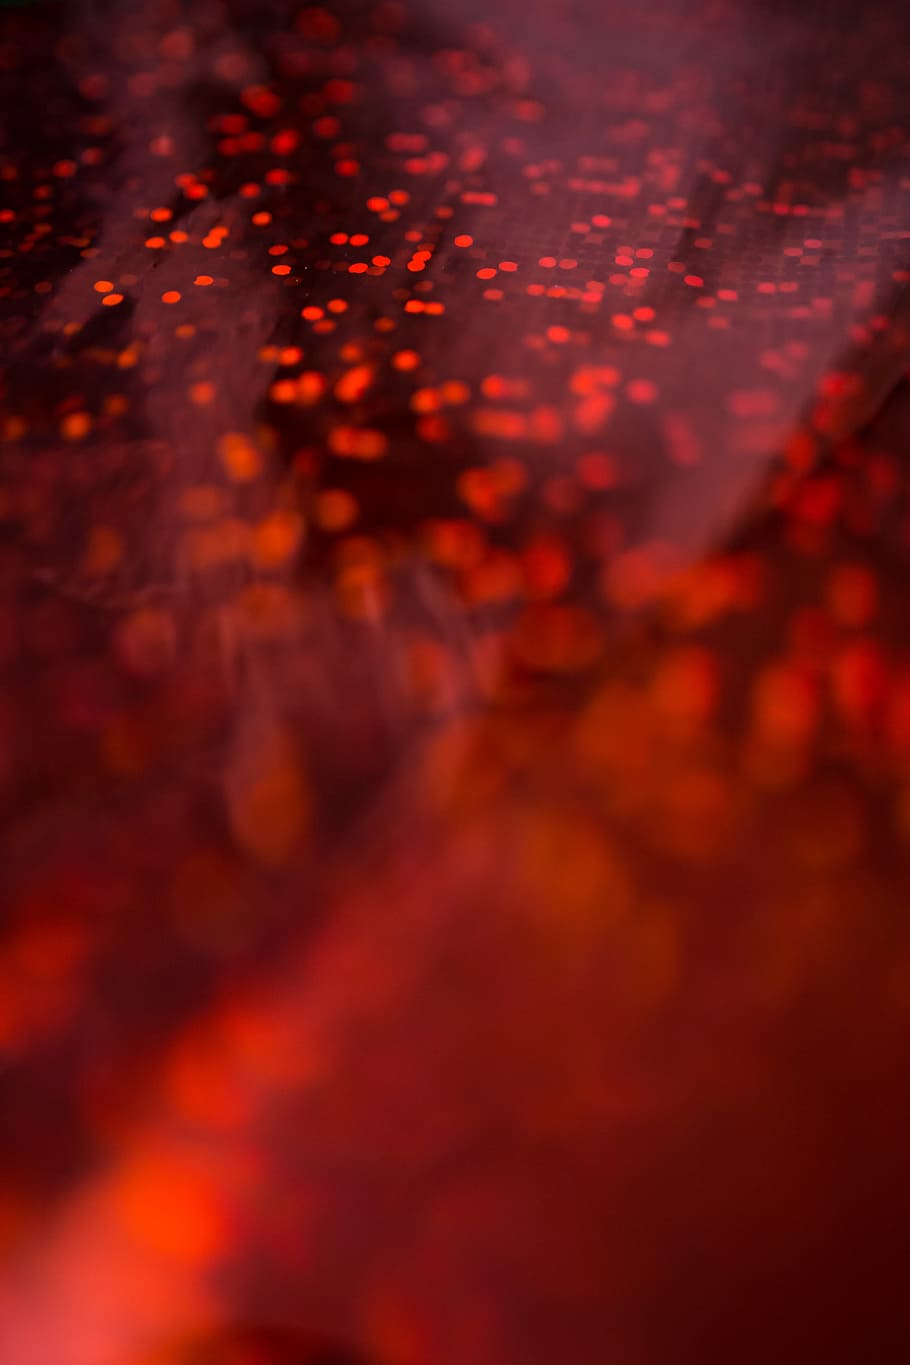 Red Holographic Paper Backgrounds Abstract Texture Red Texture Bokhe Background 910x1365 Wallpaper Teahub Io